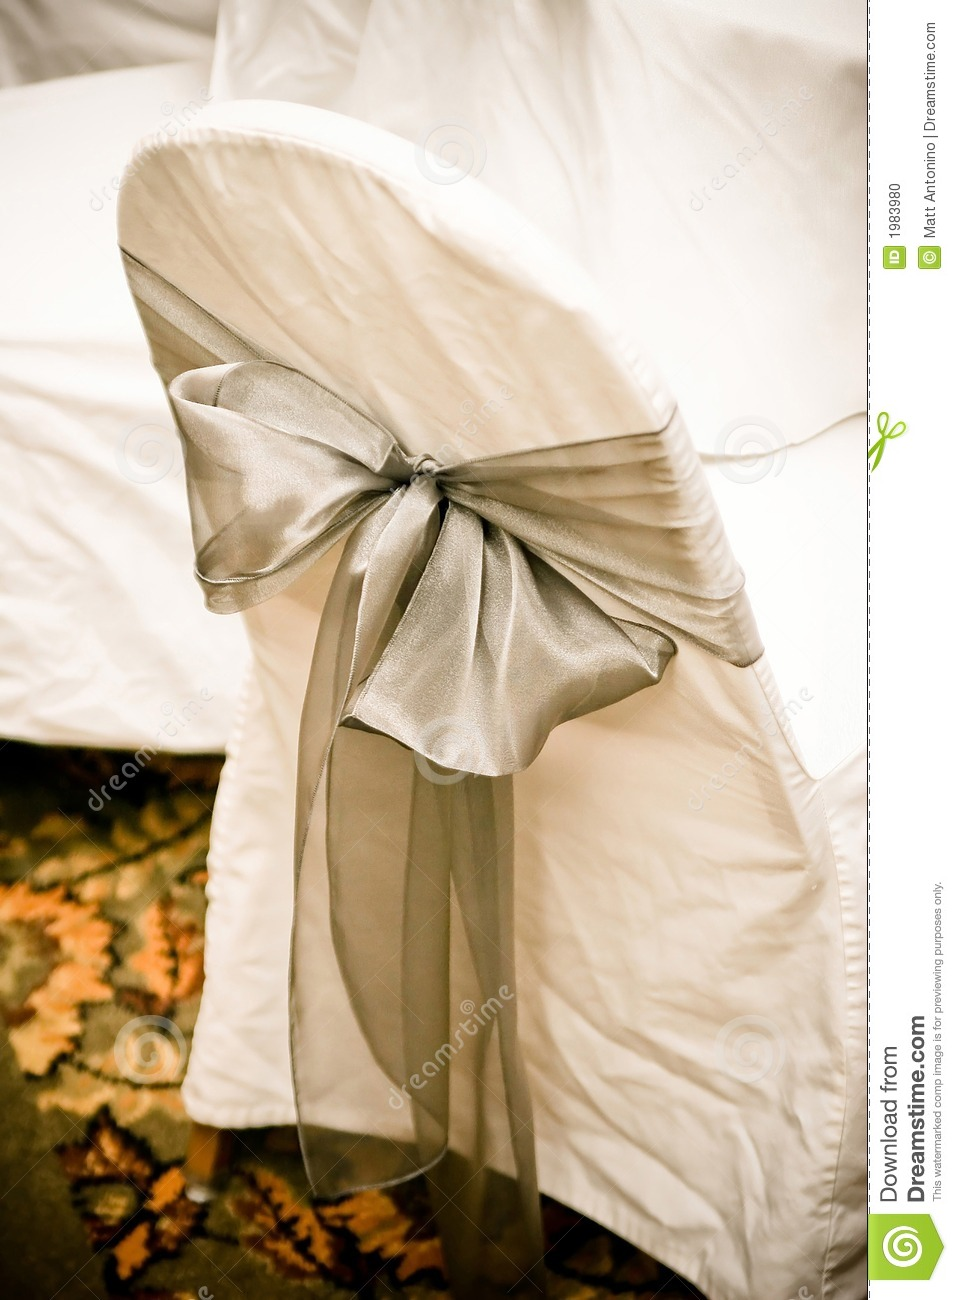 chair covers sage green chairs for teenagers wedding stock photo image of 1983980 a cover with bow